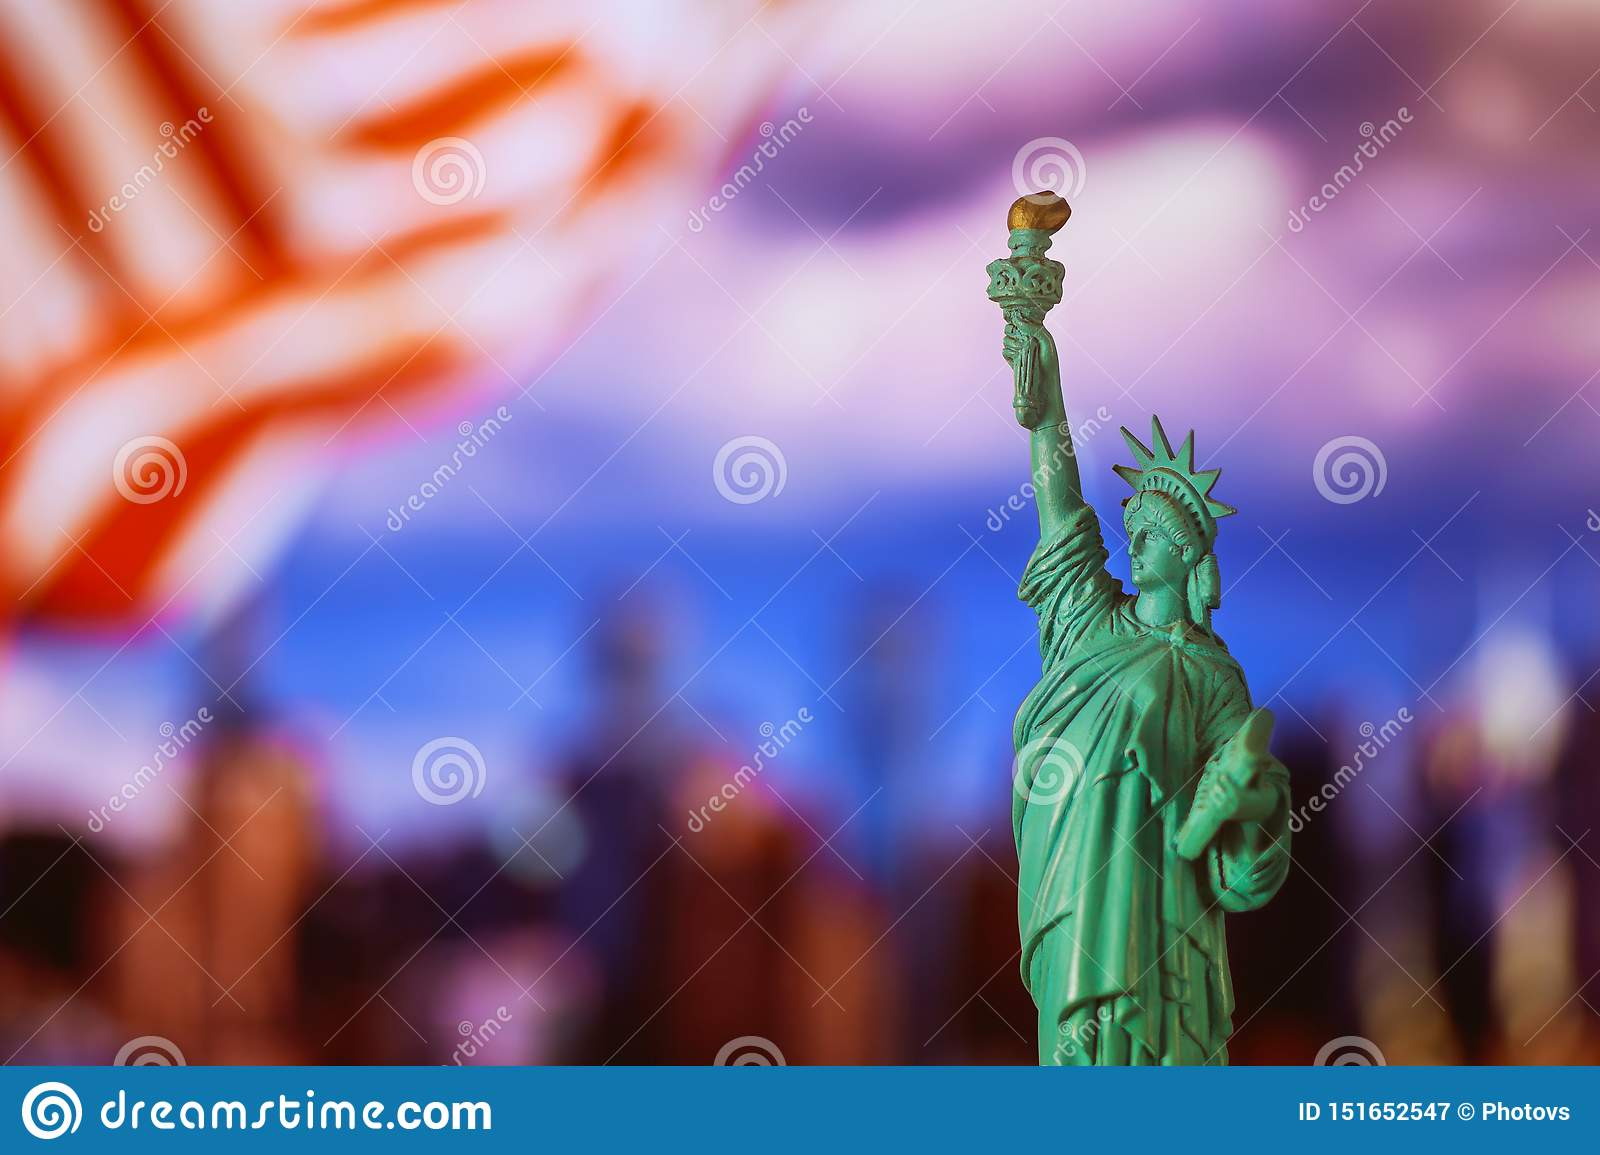 Statue of Liberty with flag of the United States of America New York City